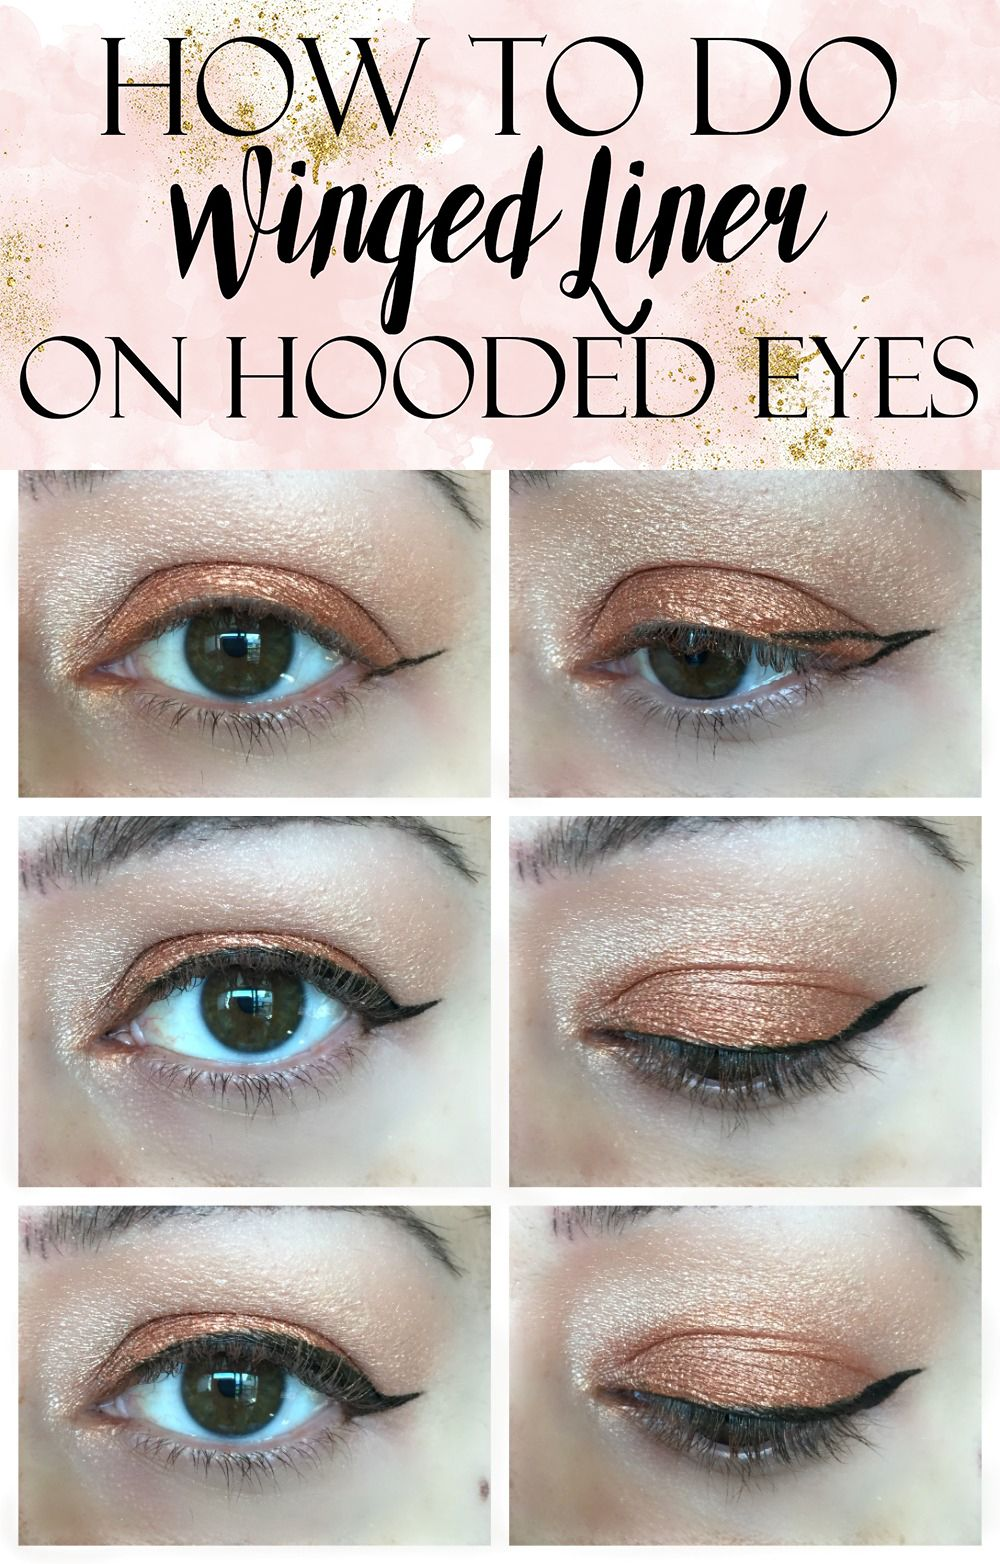 How to apply winged liner on hooded eyes tutorial hooded eyes easy winged eye liner tutorial for hooded eye lids baditri Image collections